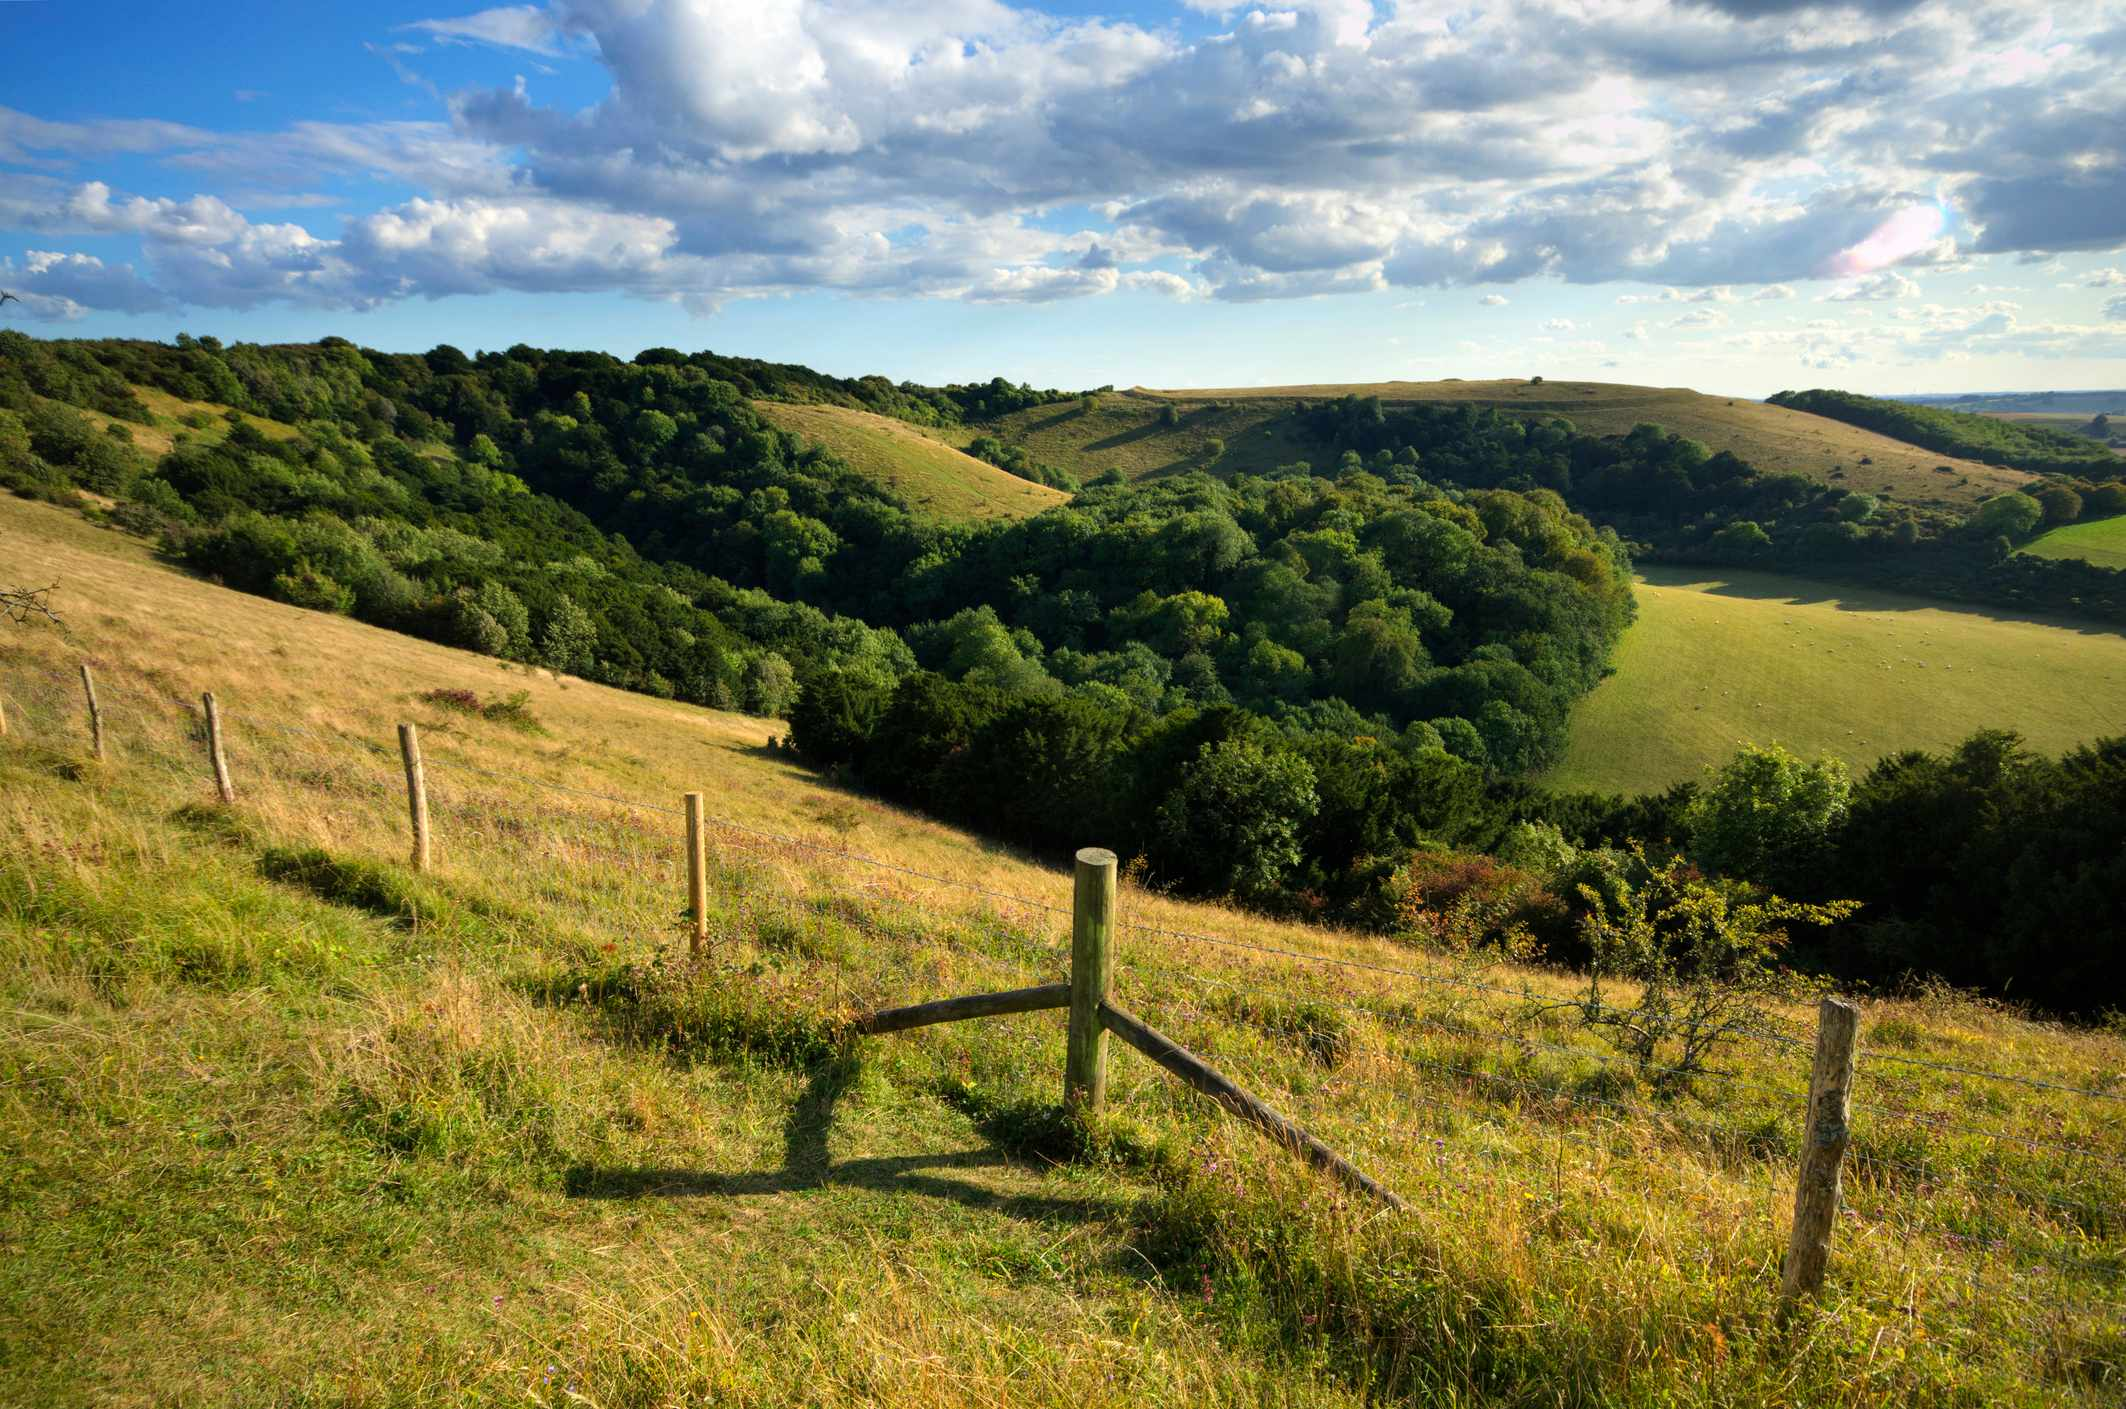 South Downs National Park in England, with Old Winchester hill in the distance ©Getty